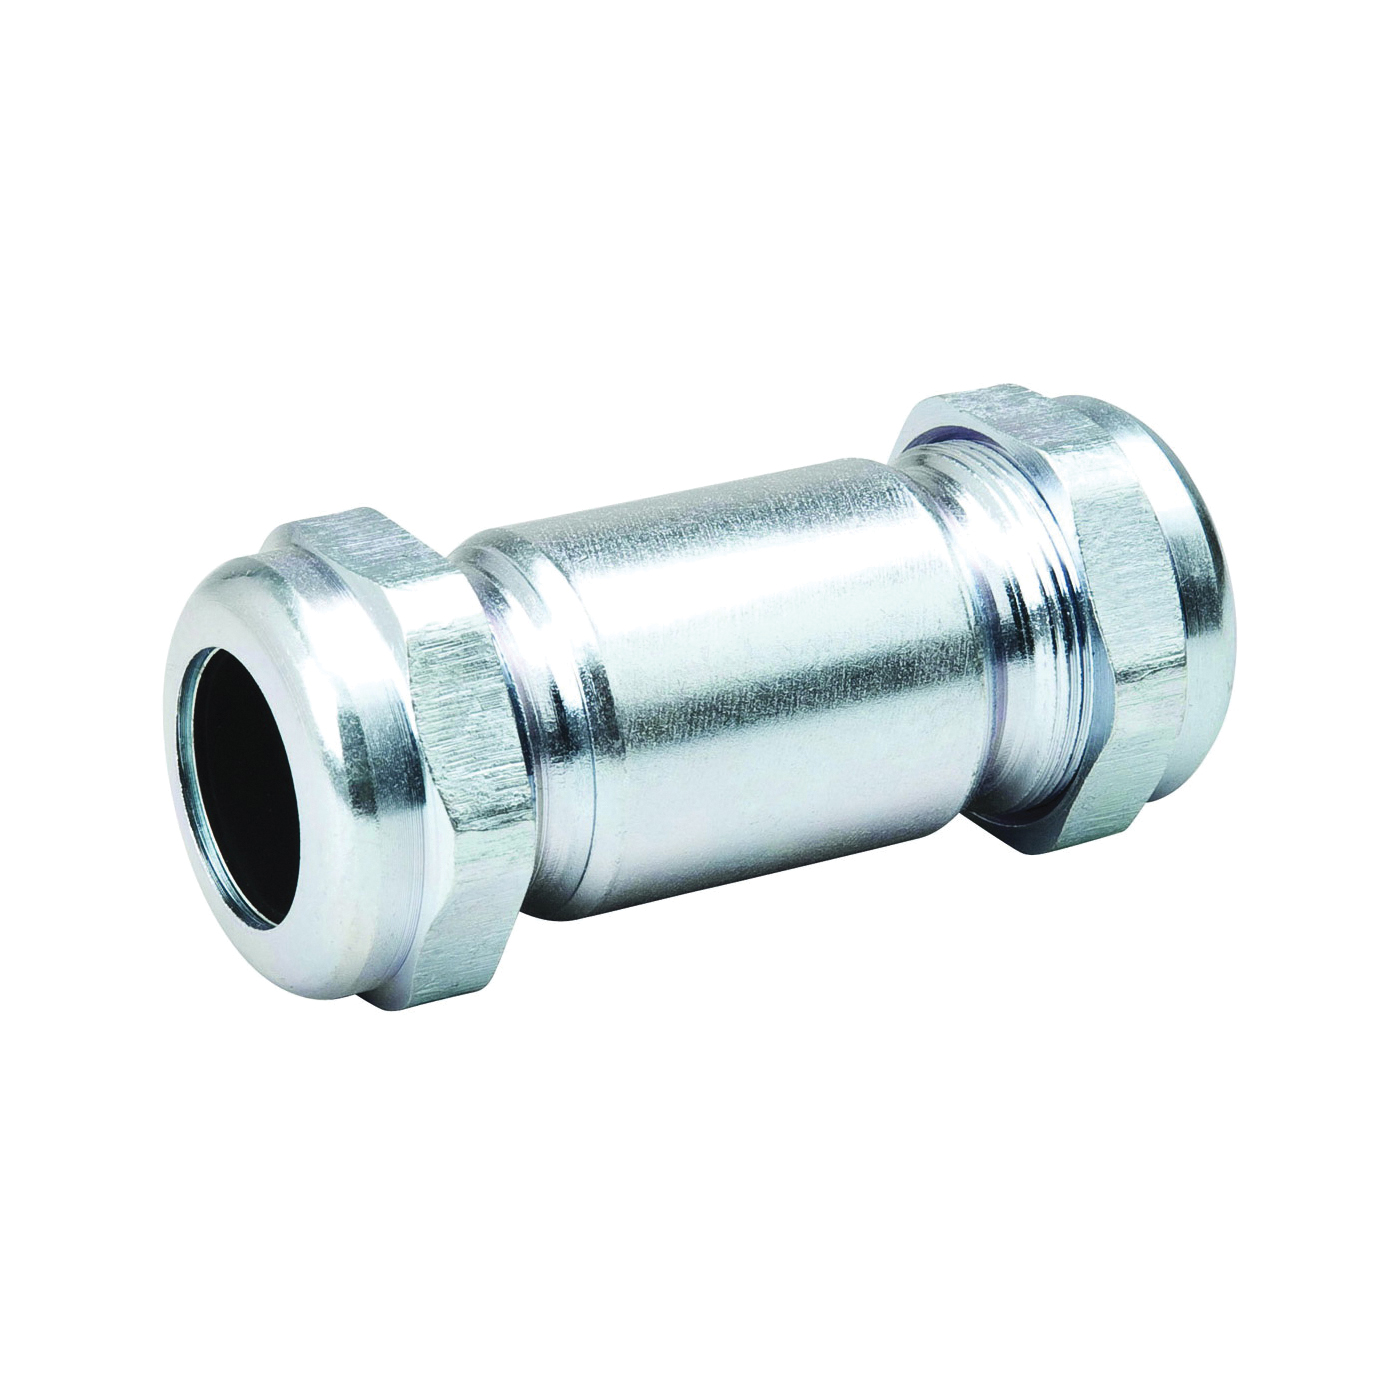 Picture of B & K 160-005HC Compression Coupling, 1 in, IPS, 125 psi Pressure